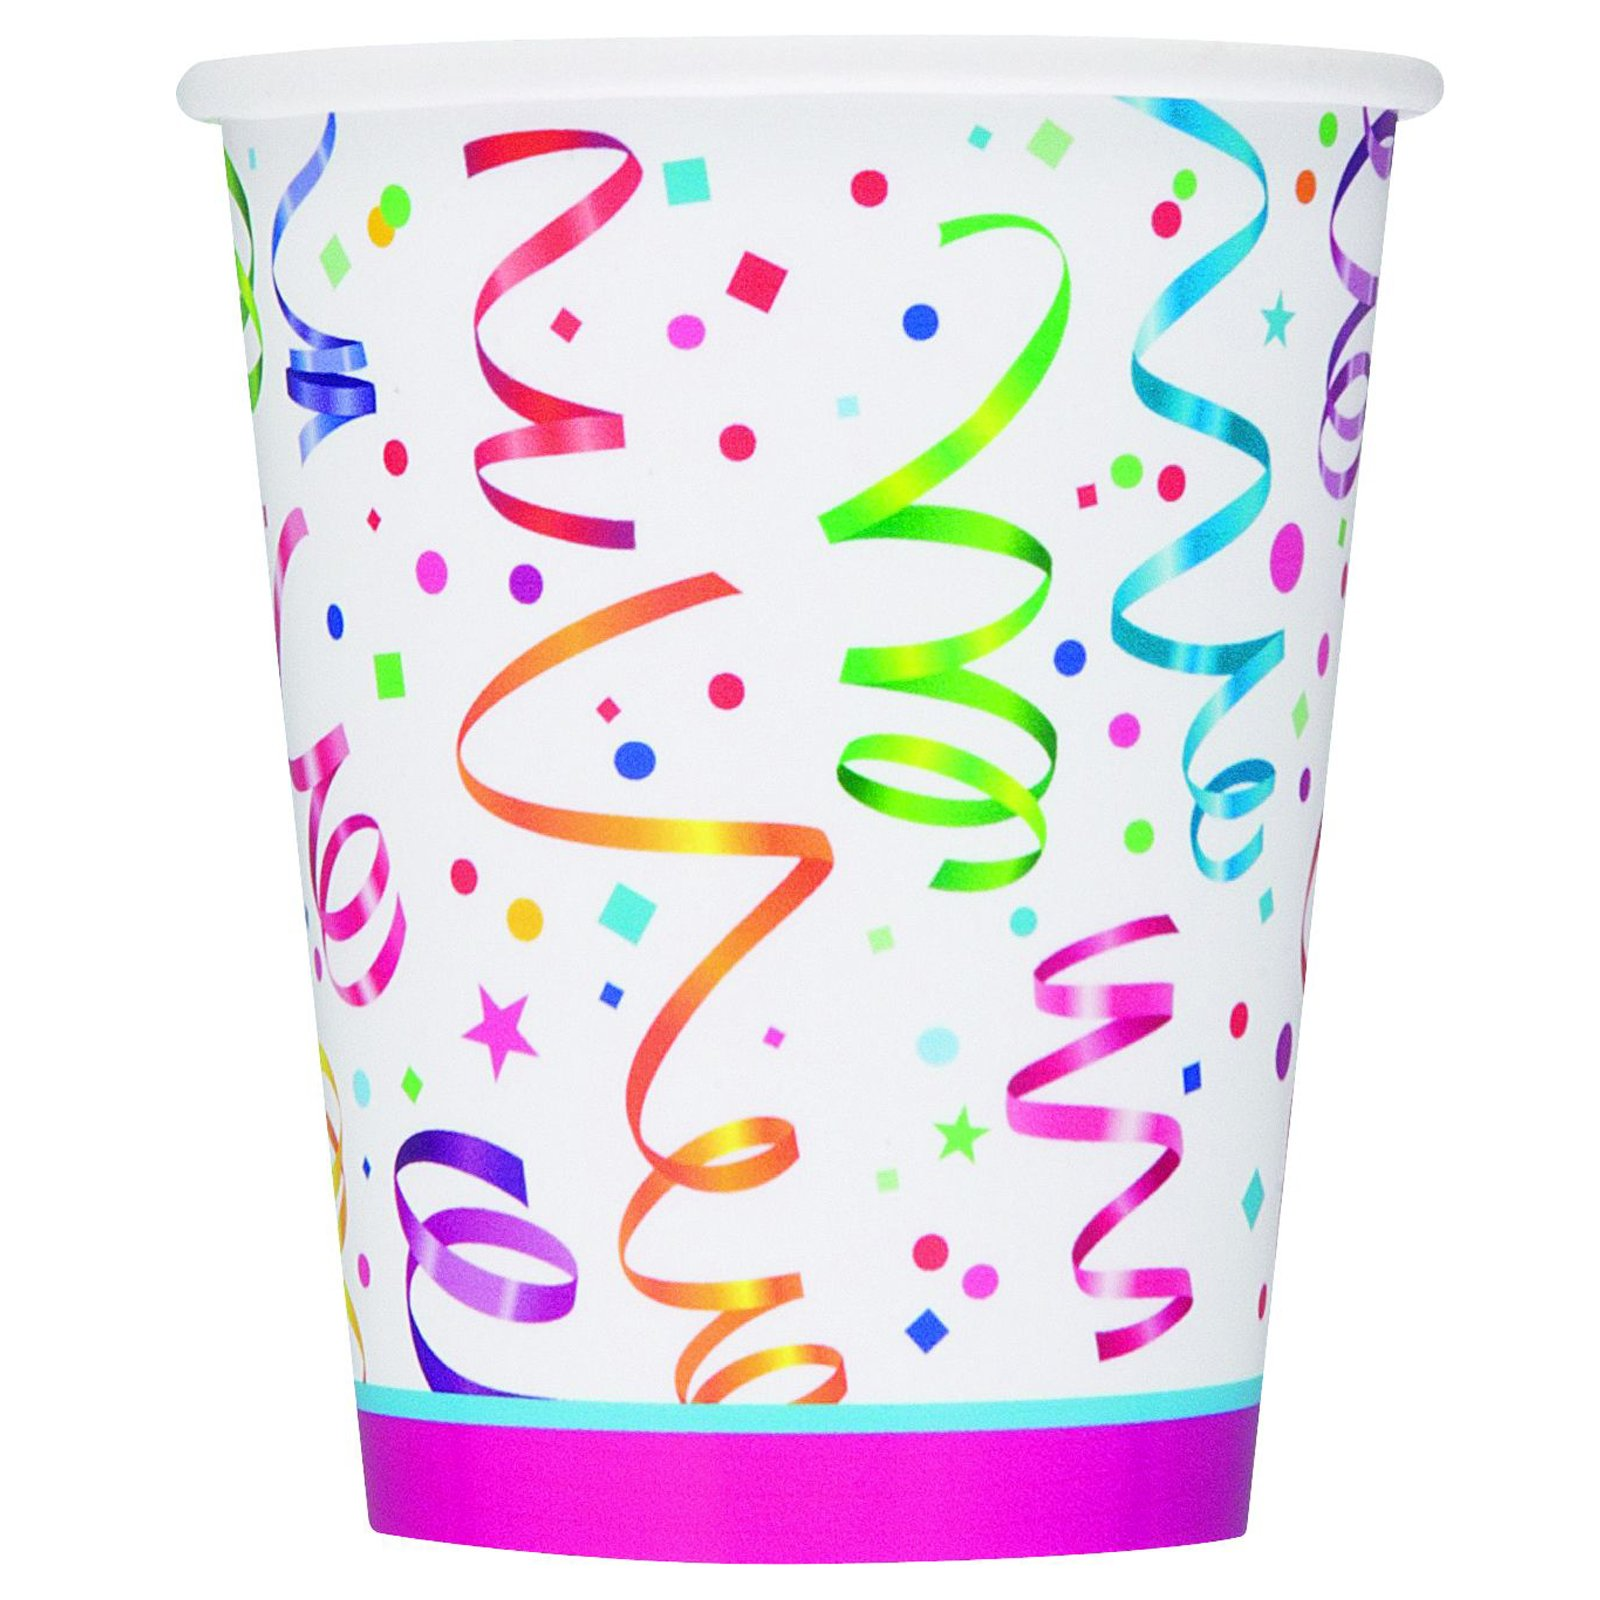 Celebrate 9 oz. Paper Cups (8 count)